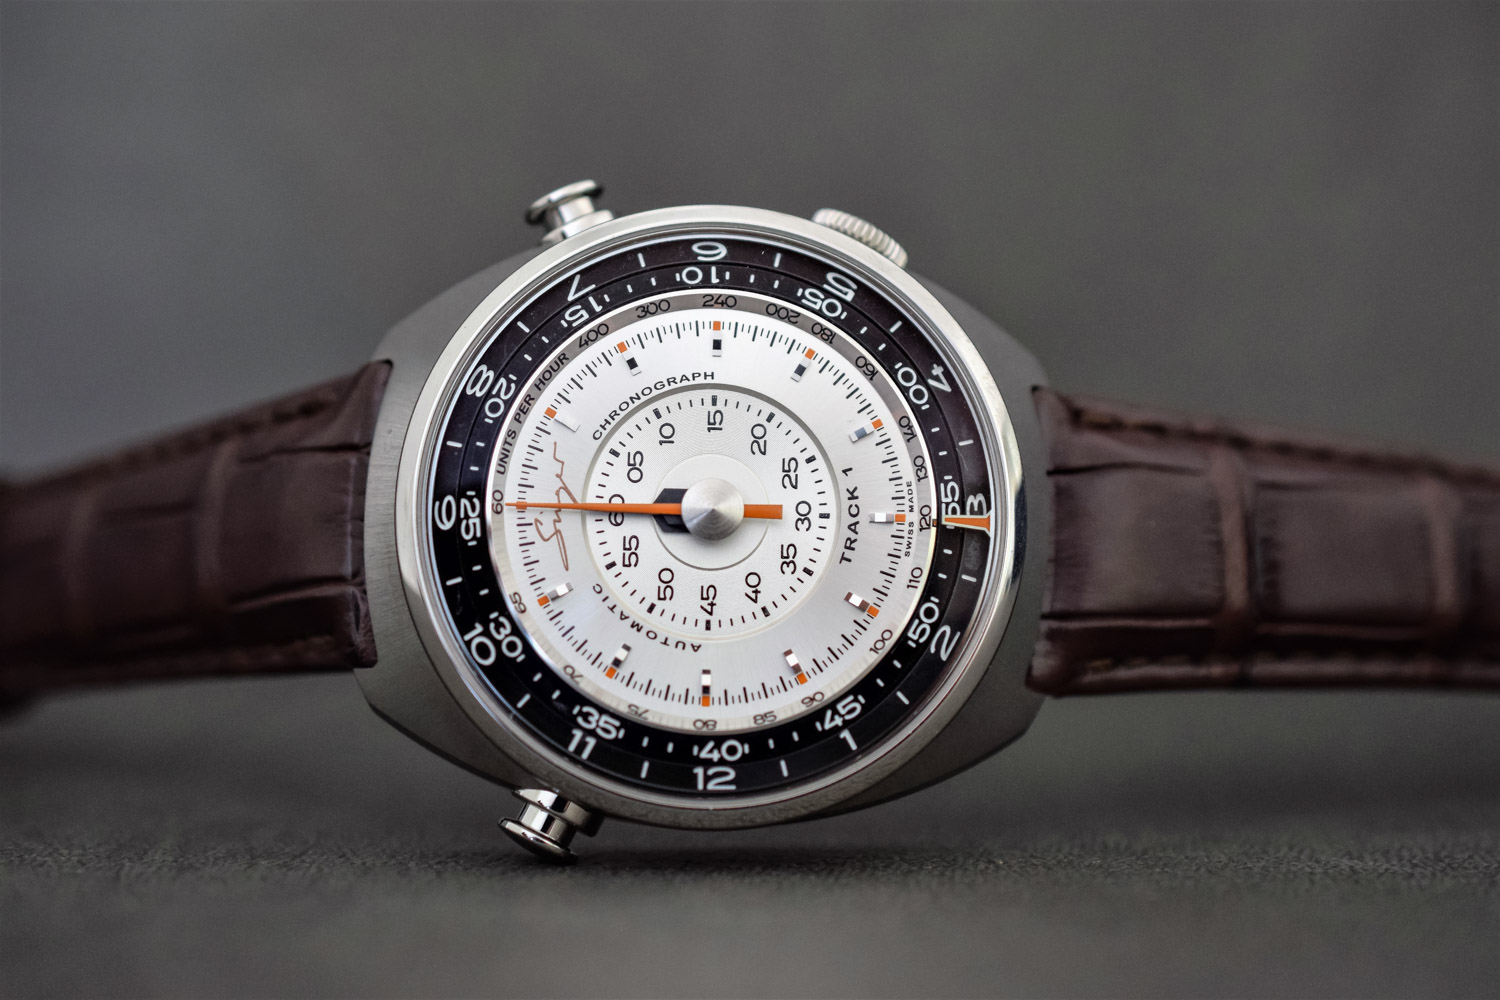 Singer Track1 Chronograph Reimagined